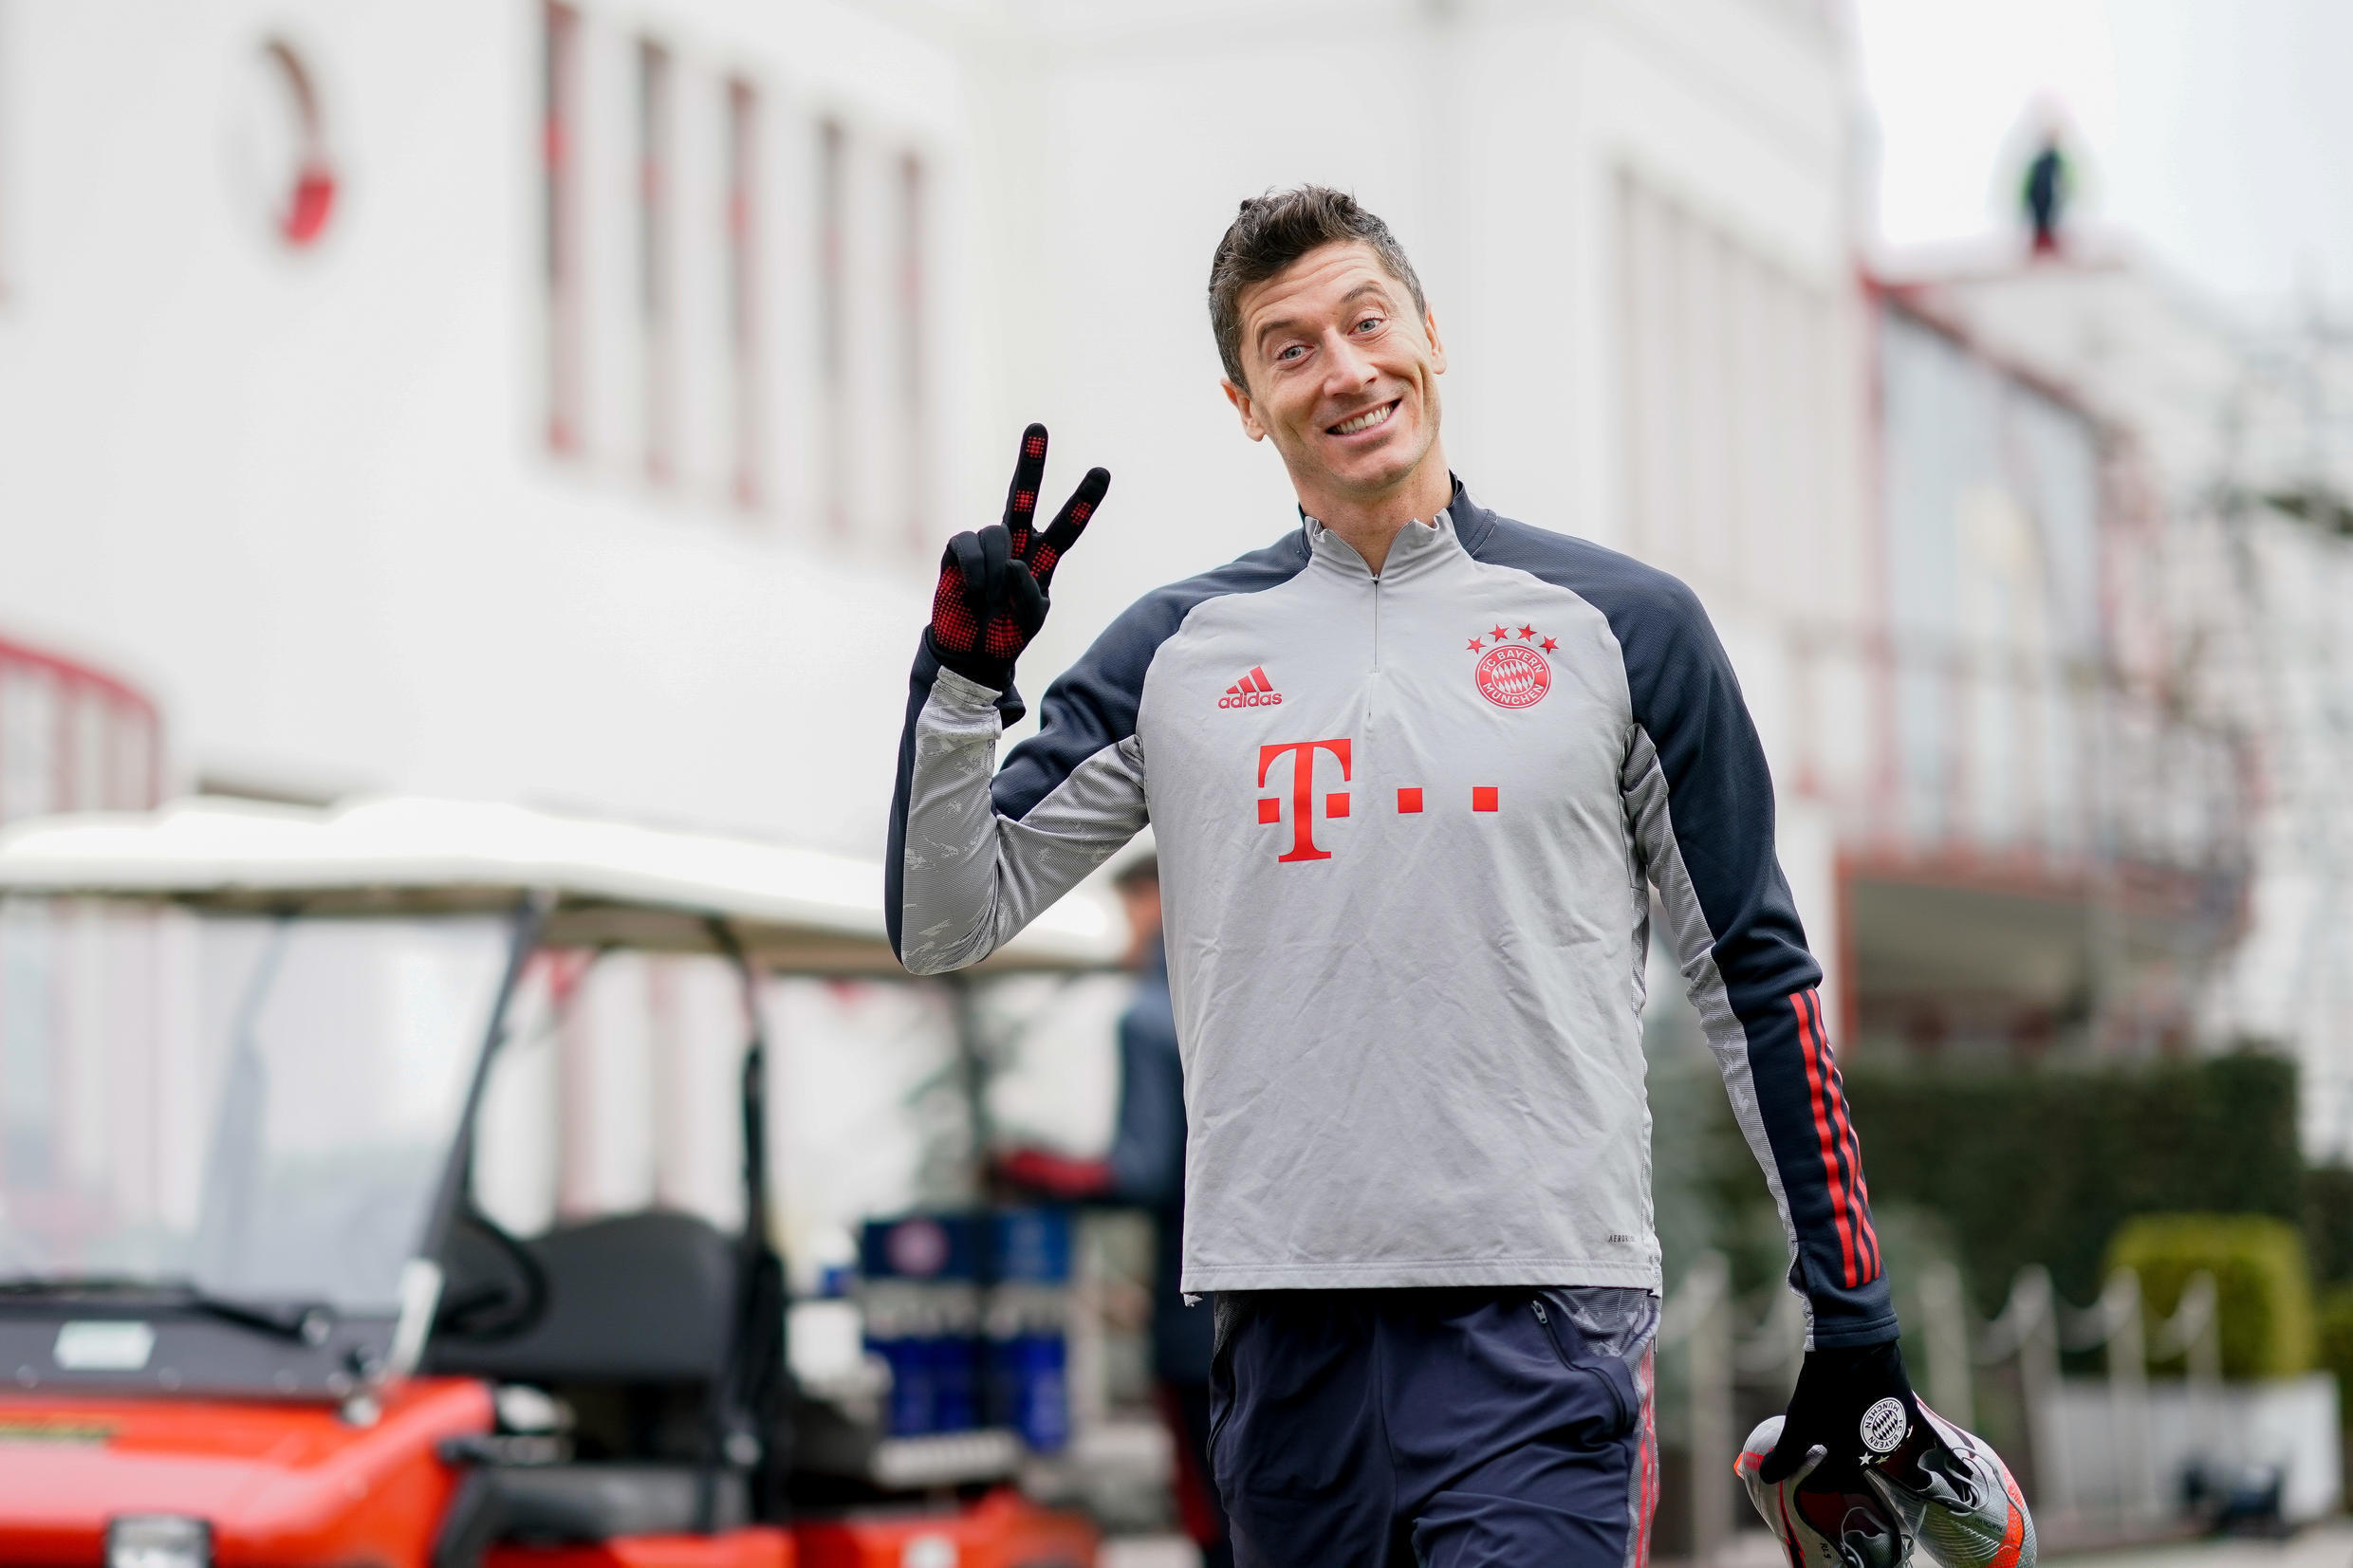 Robert Lewandowski, seen here in Bayern Munich training last November, took part in running drills on Monday for the first time after a knee injury